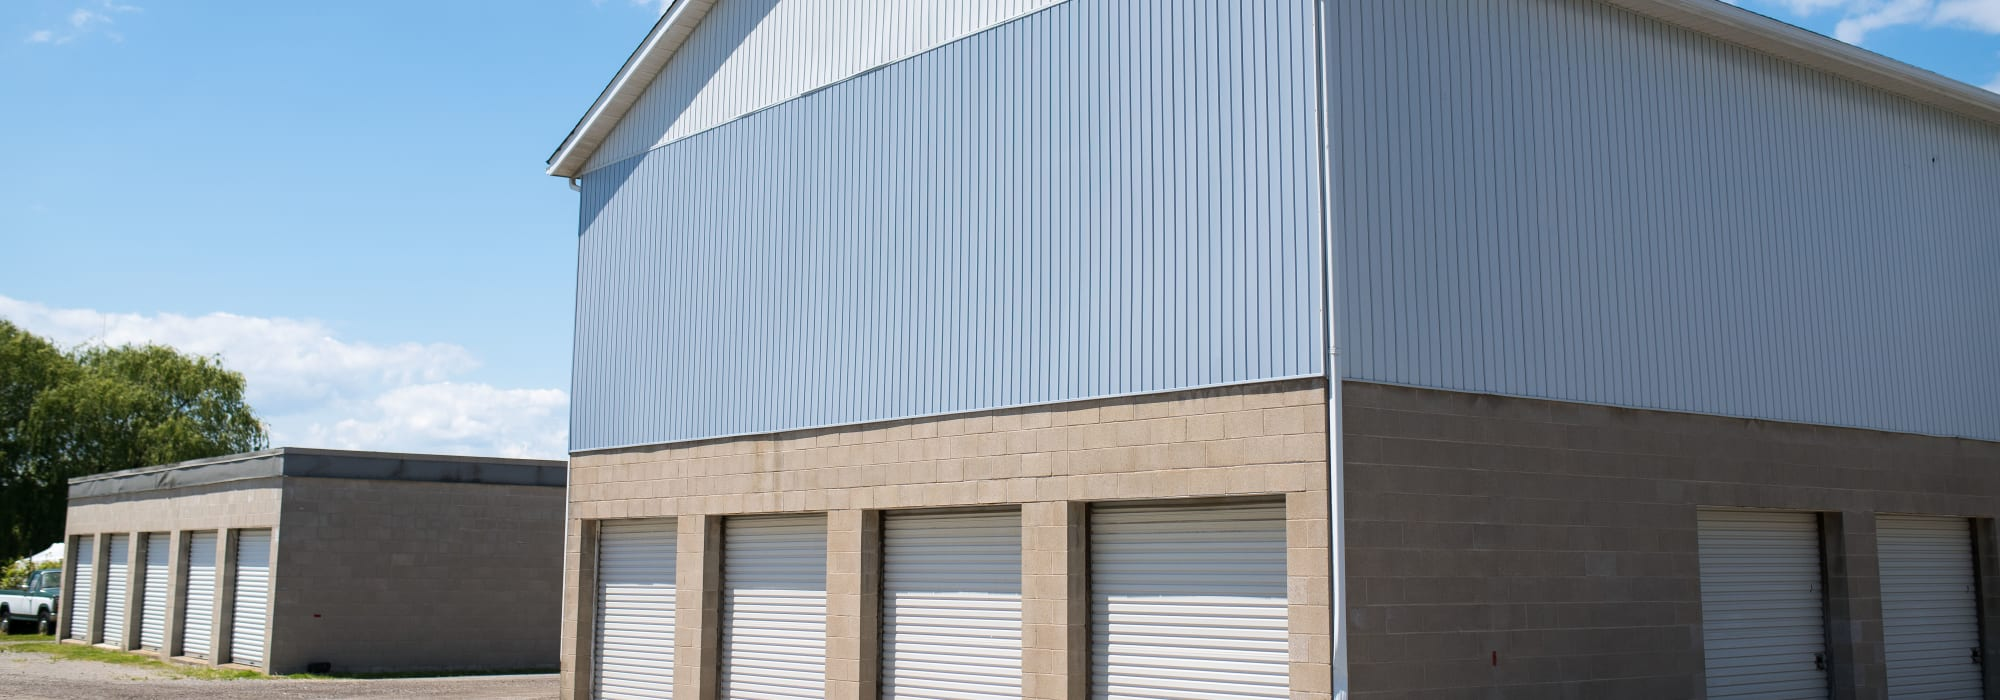 Storage units available at Apple Self Storage - St. Catharines in St. Catharines, Ontario